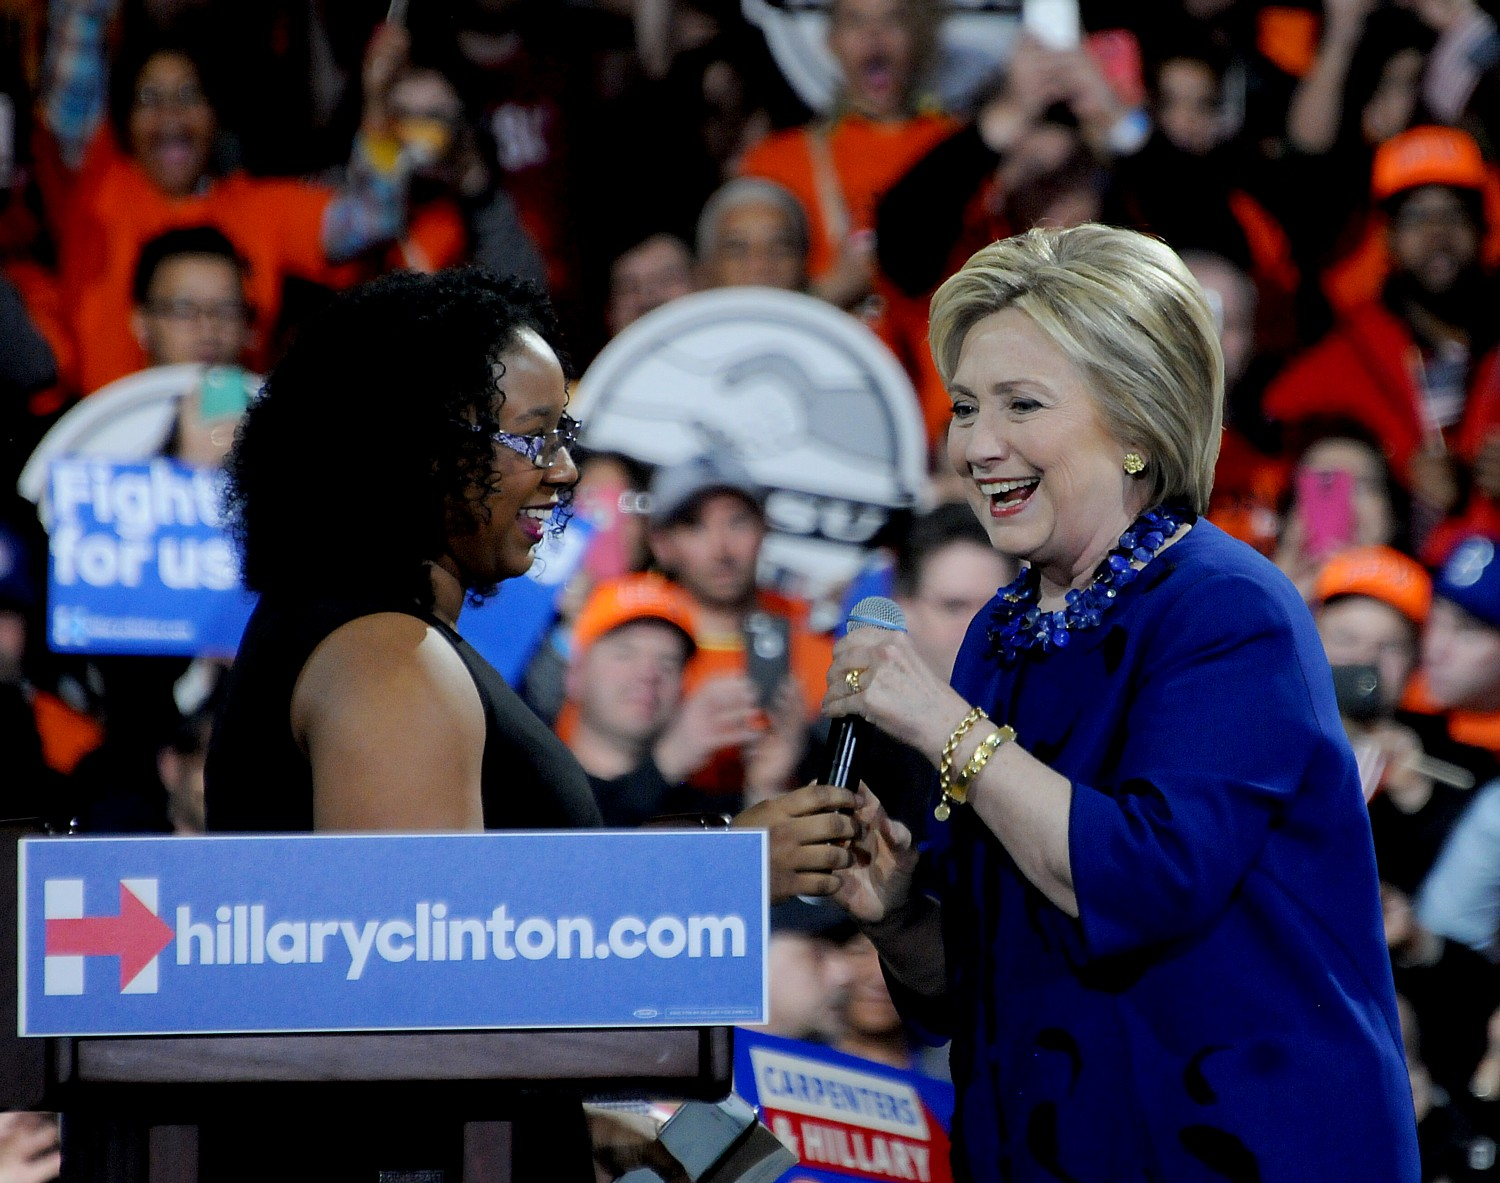 """Hillary Clinton greets Aleatha Williams, who introduced Clinton at the NYC rally saying, """"She kept her promise to me, a young girl from the Bronx. That's the type of person we need in the Oval office."""" © 2016 Karen Rubin/news-photos-features.com"""